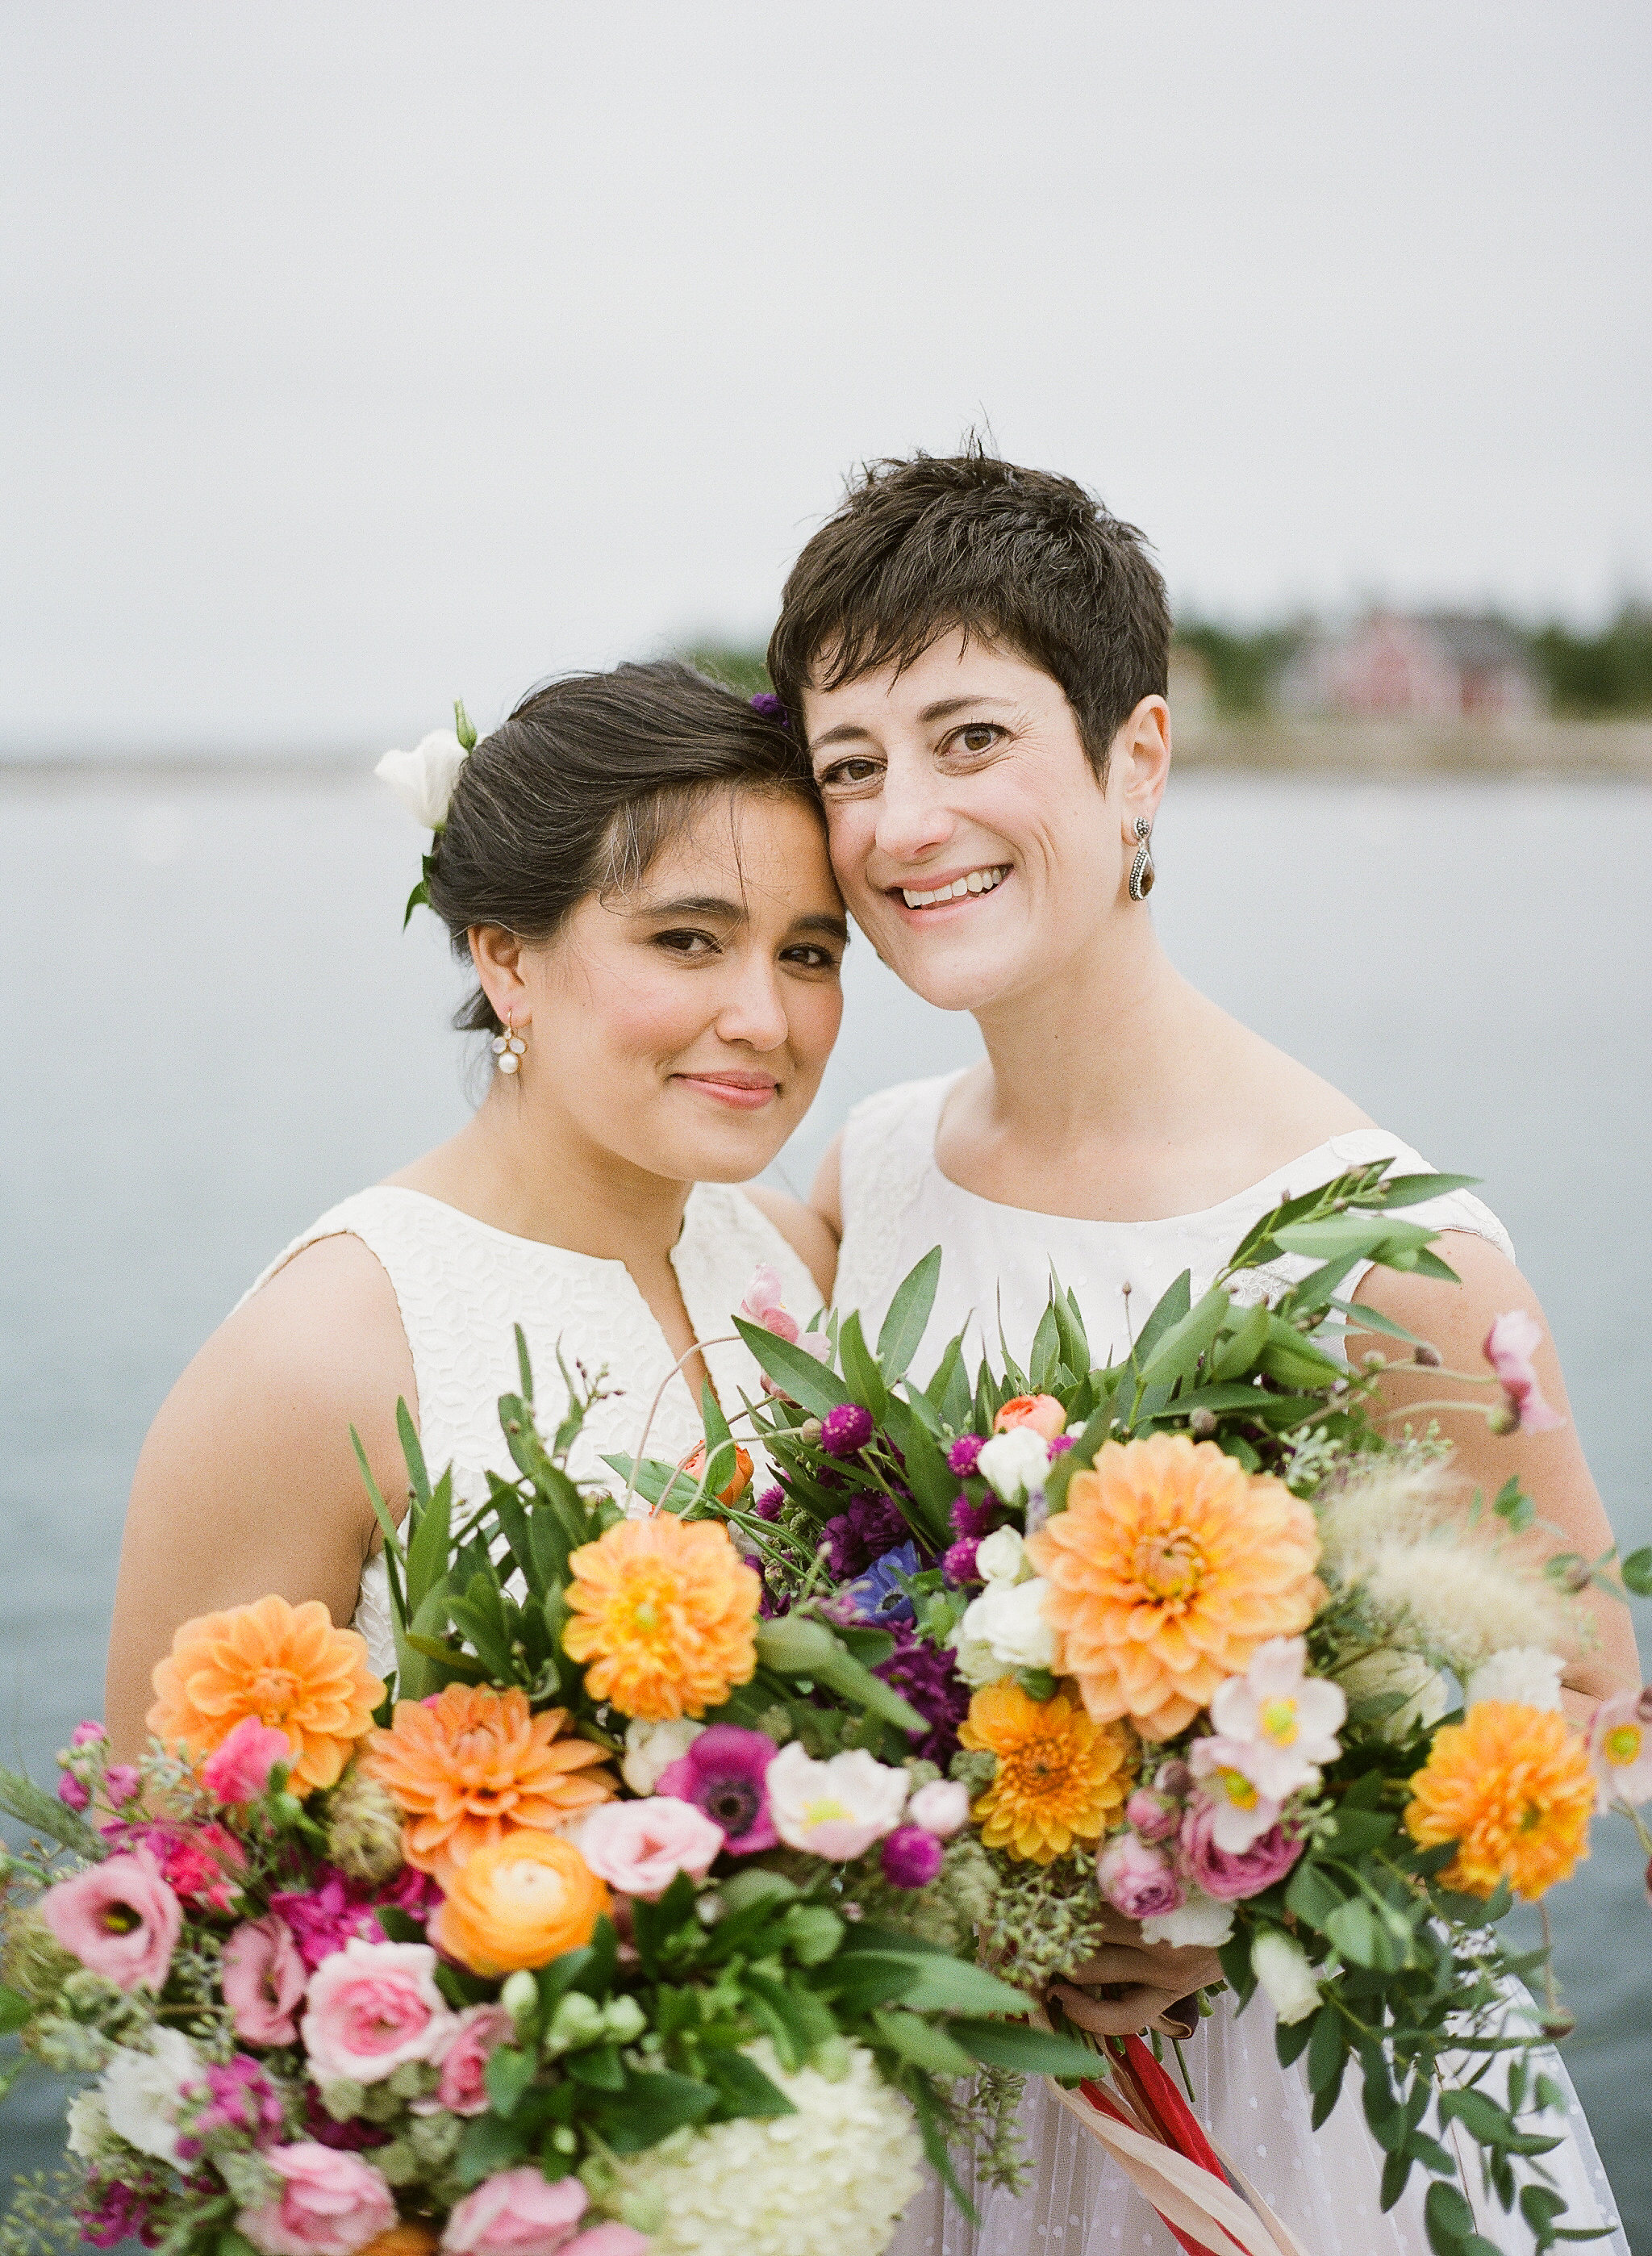 Watershed_Floral_Newagen_Southport_Maine_Coastal_Wedding_176.jpg